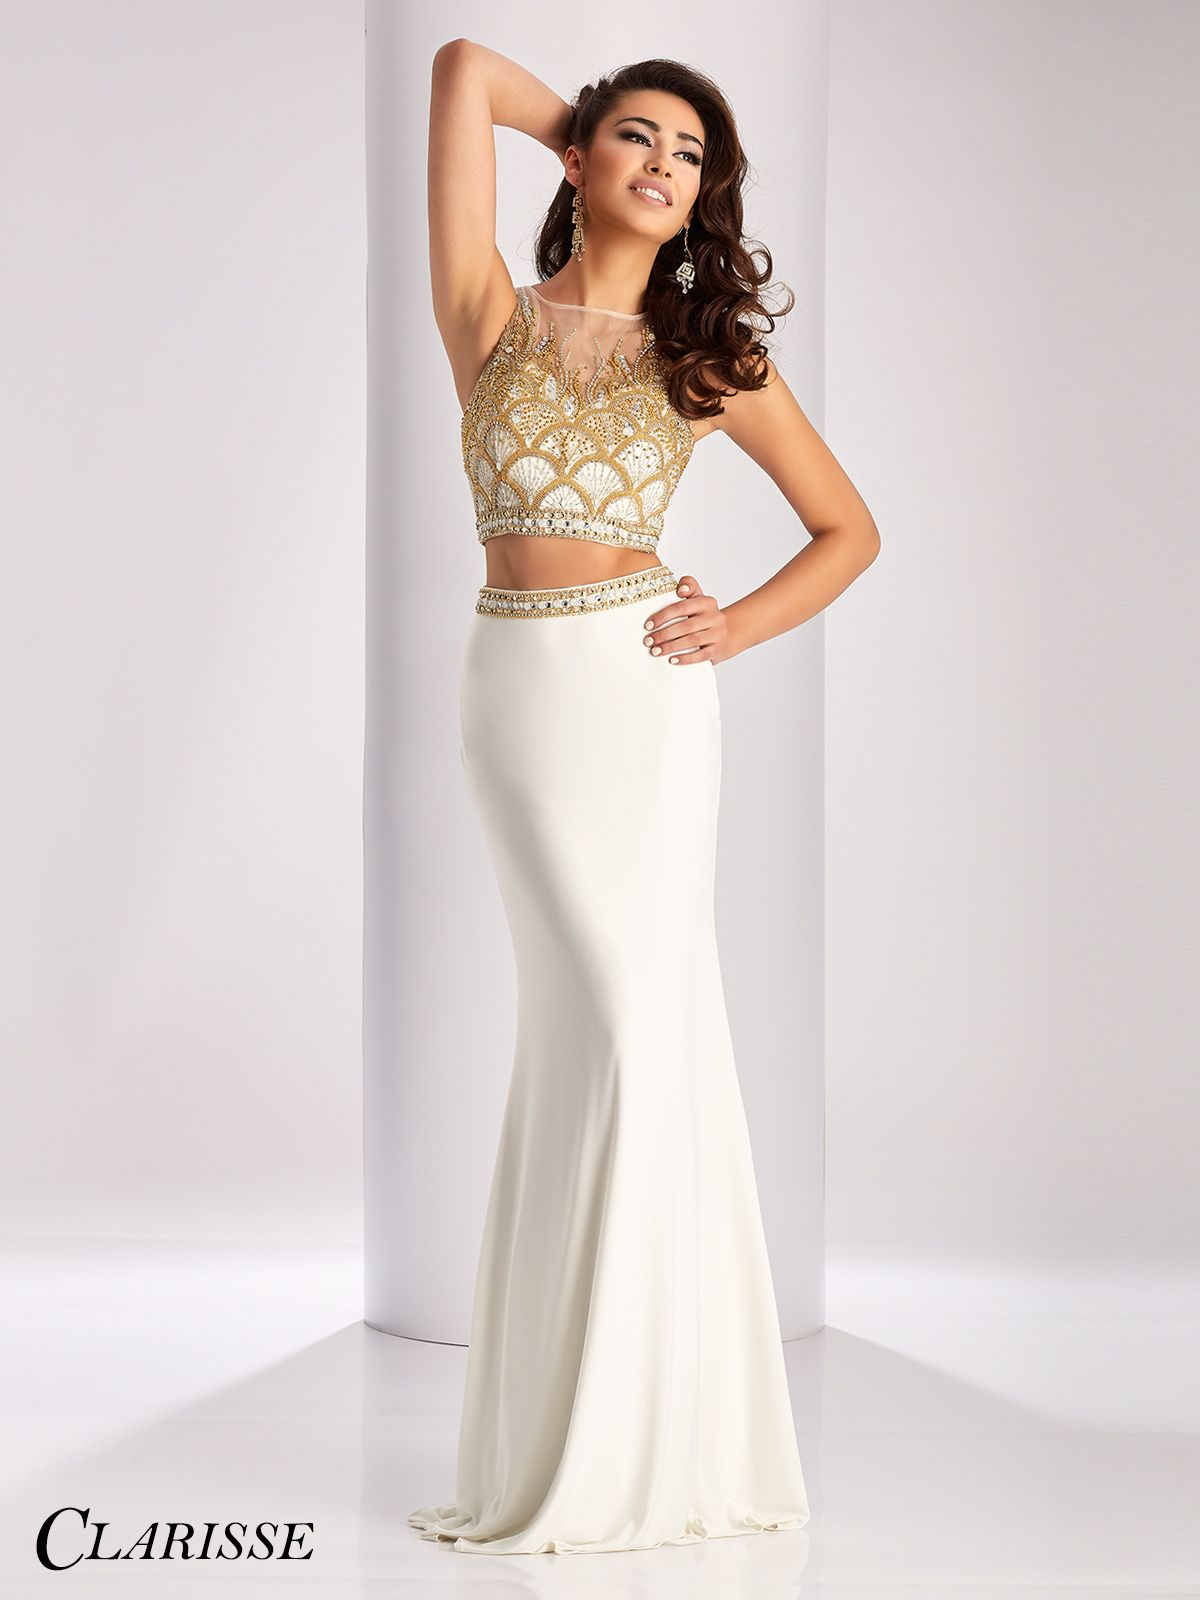 Clarisse gold embellished two piece dress pinterest prom